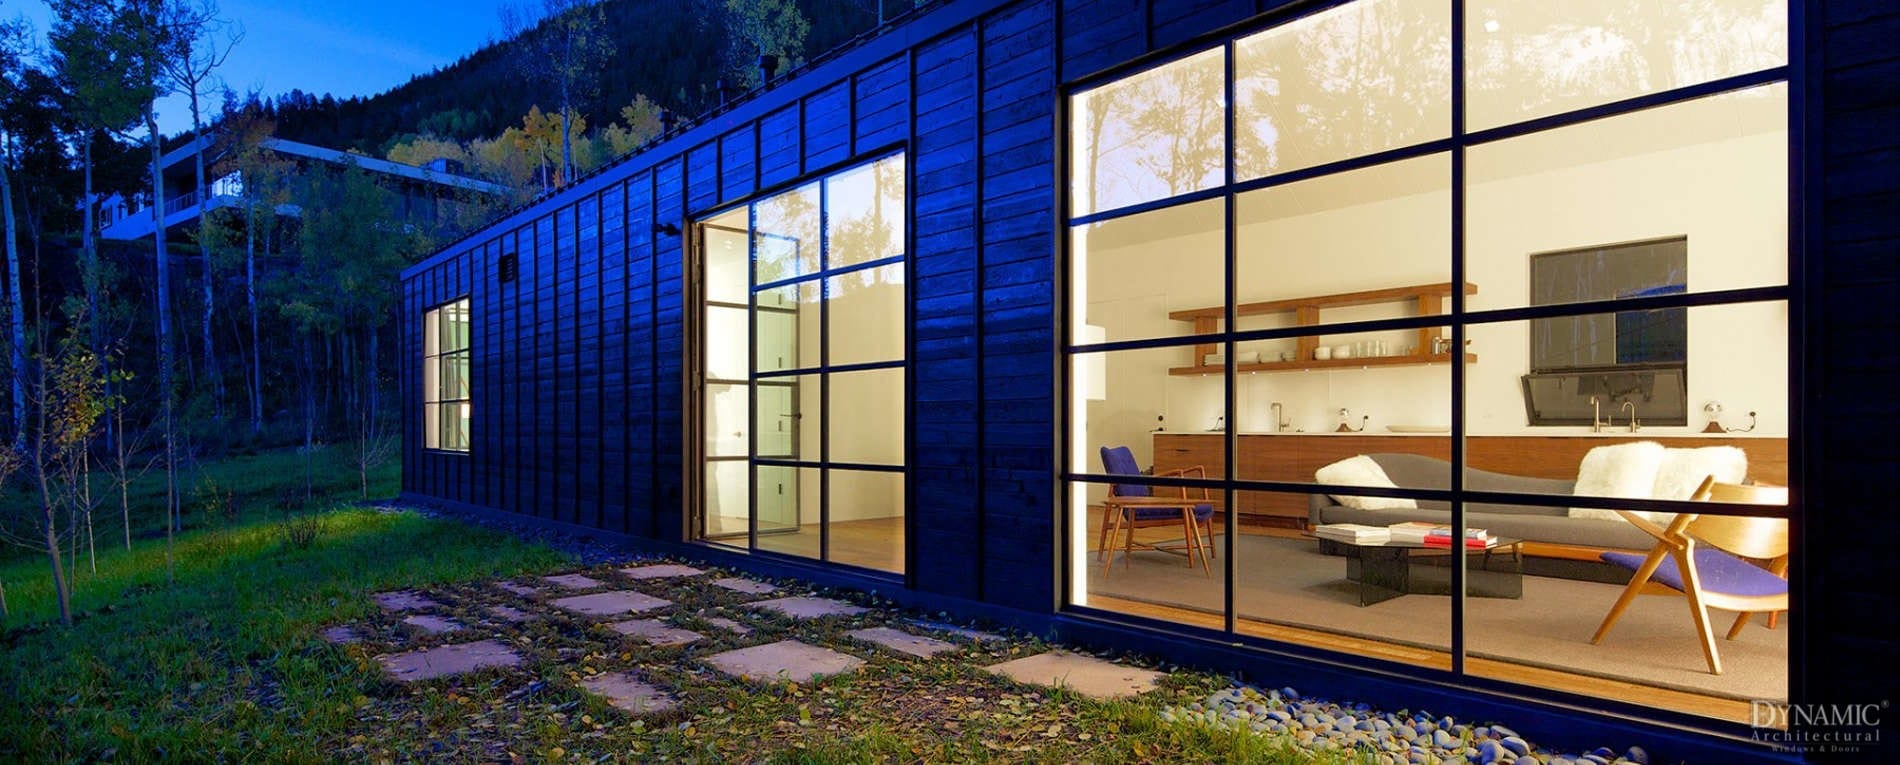 Modern Windows - Design Inspirations | Dynamic Architectural